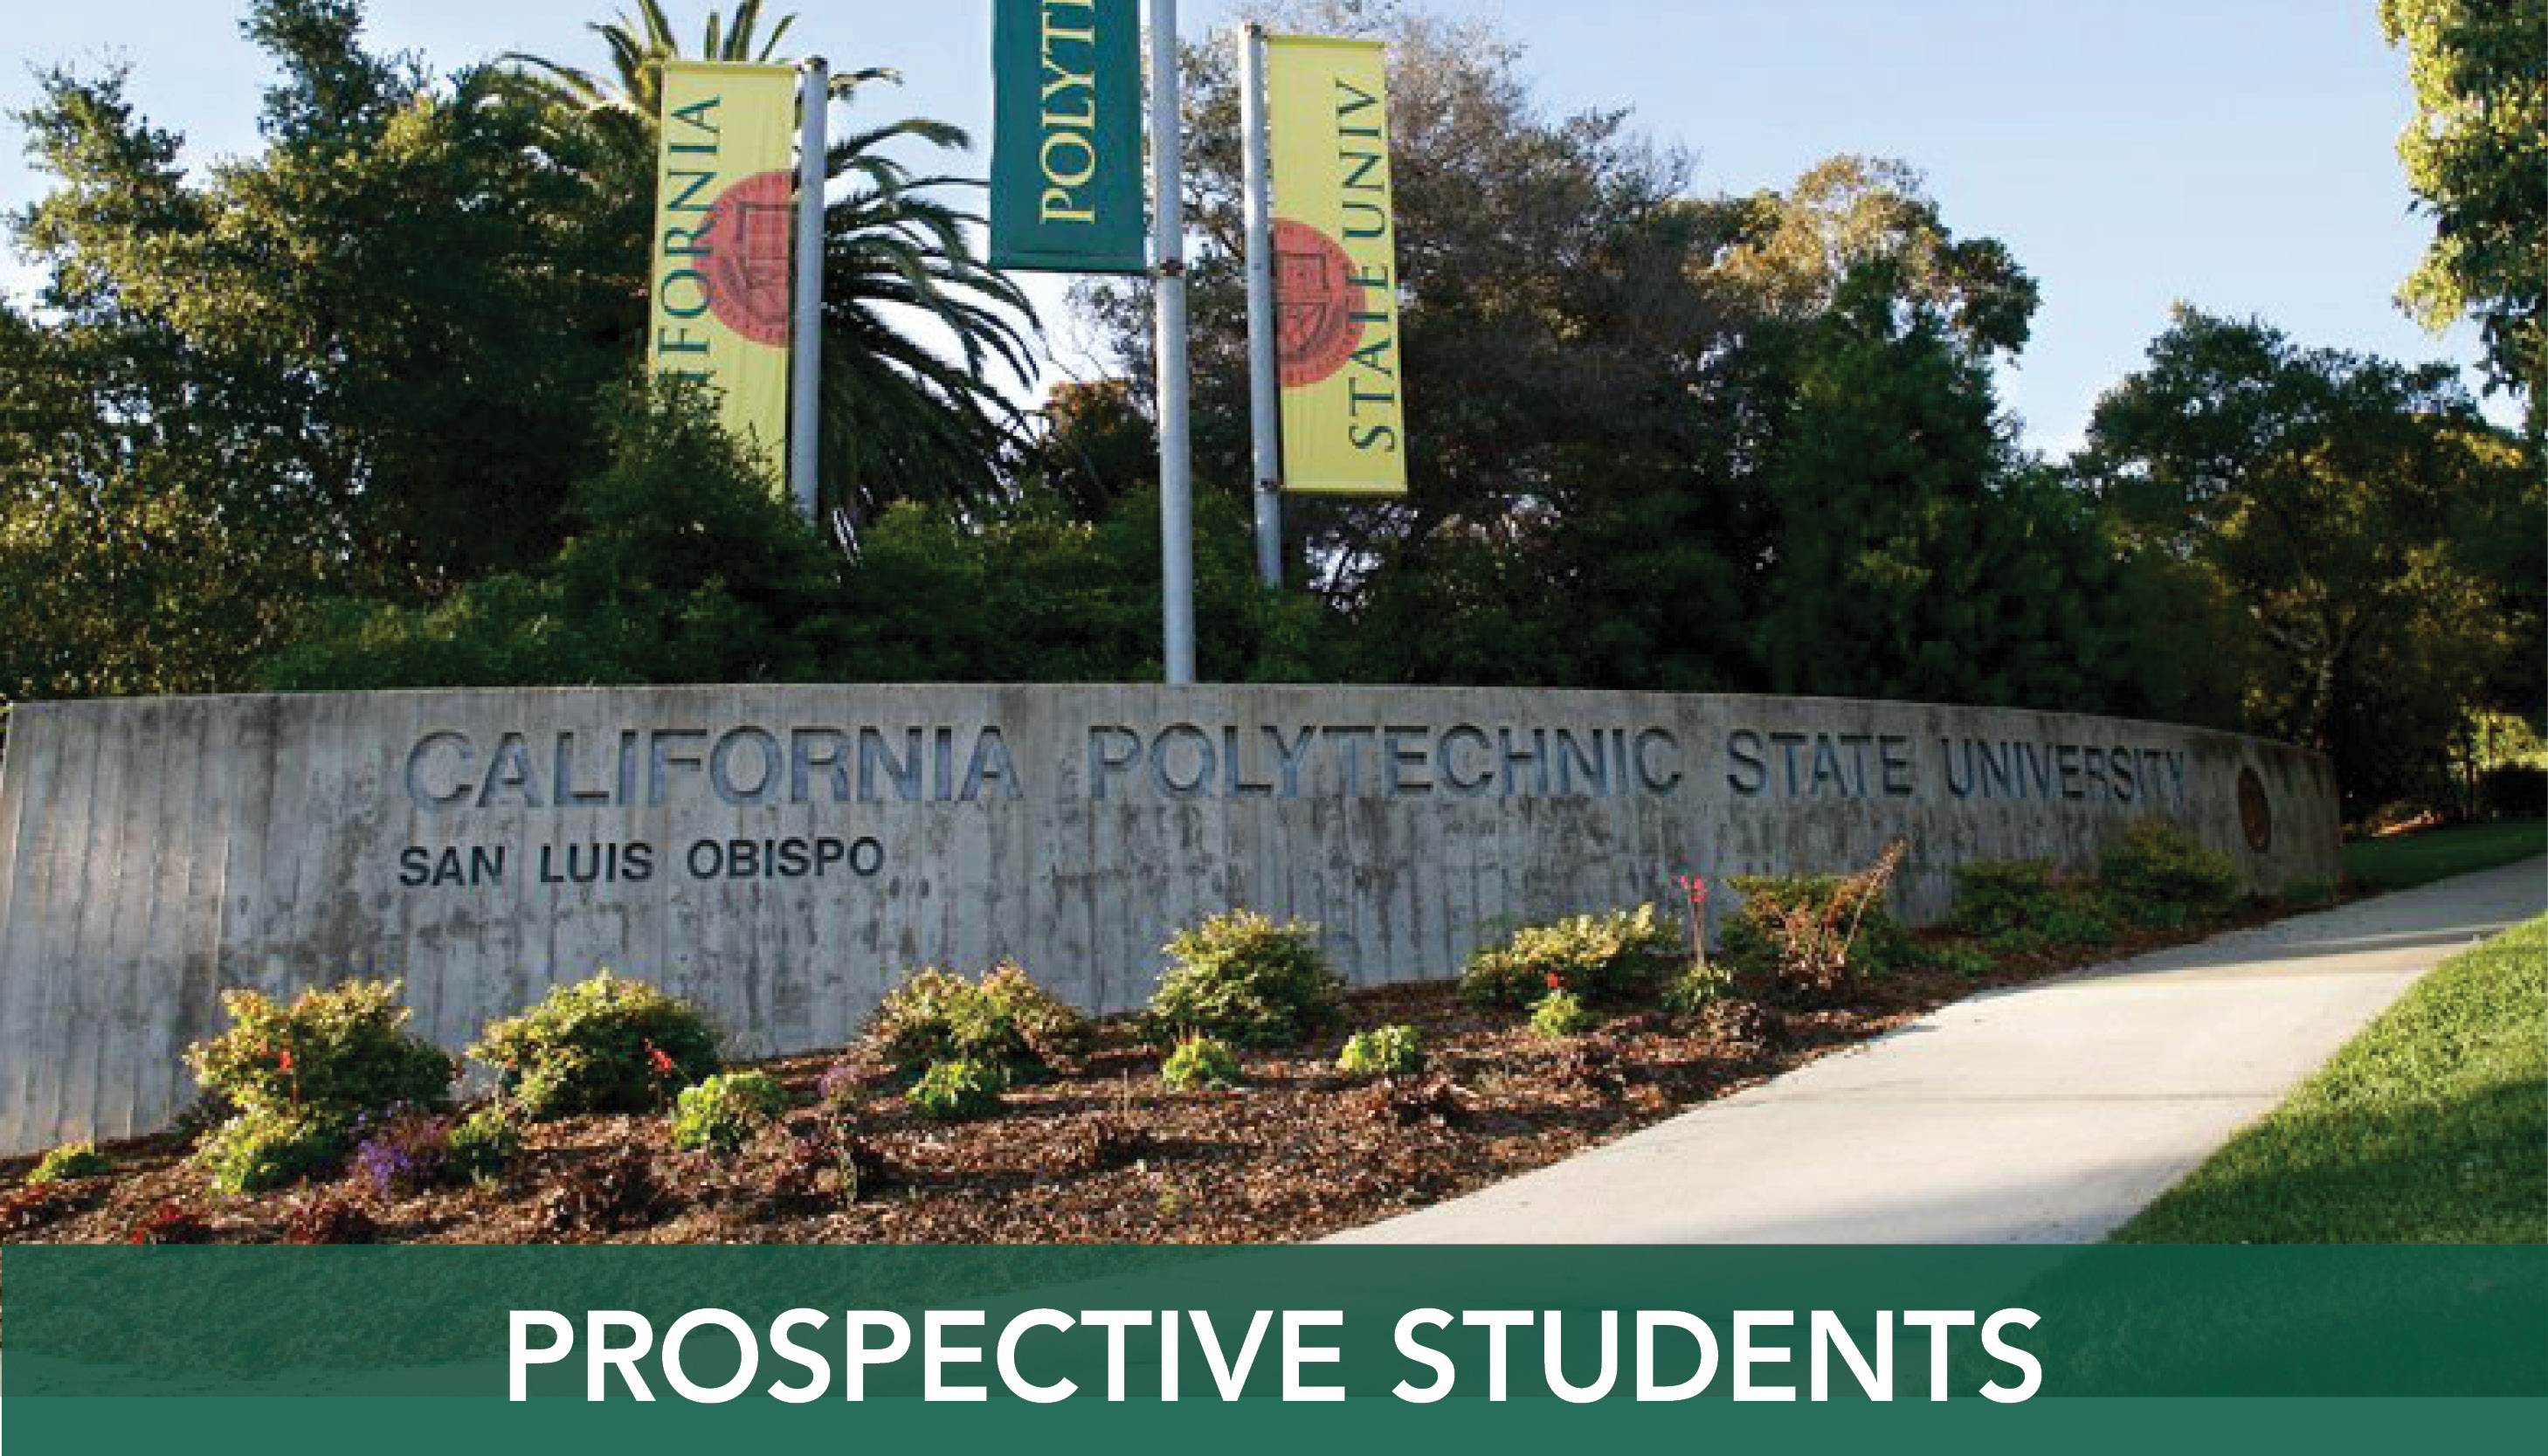 Cal Poly campus sign